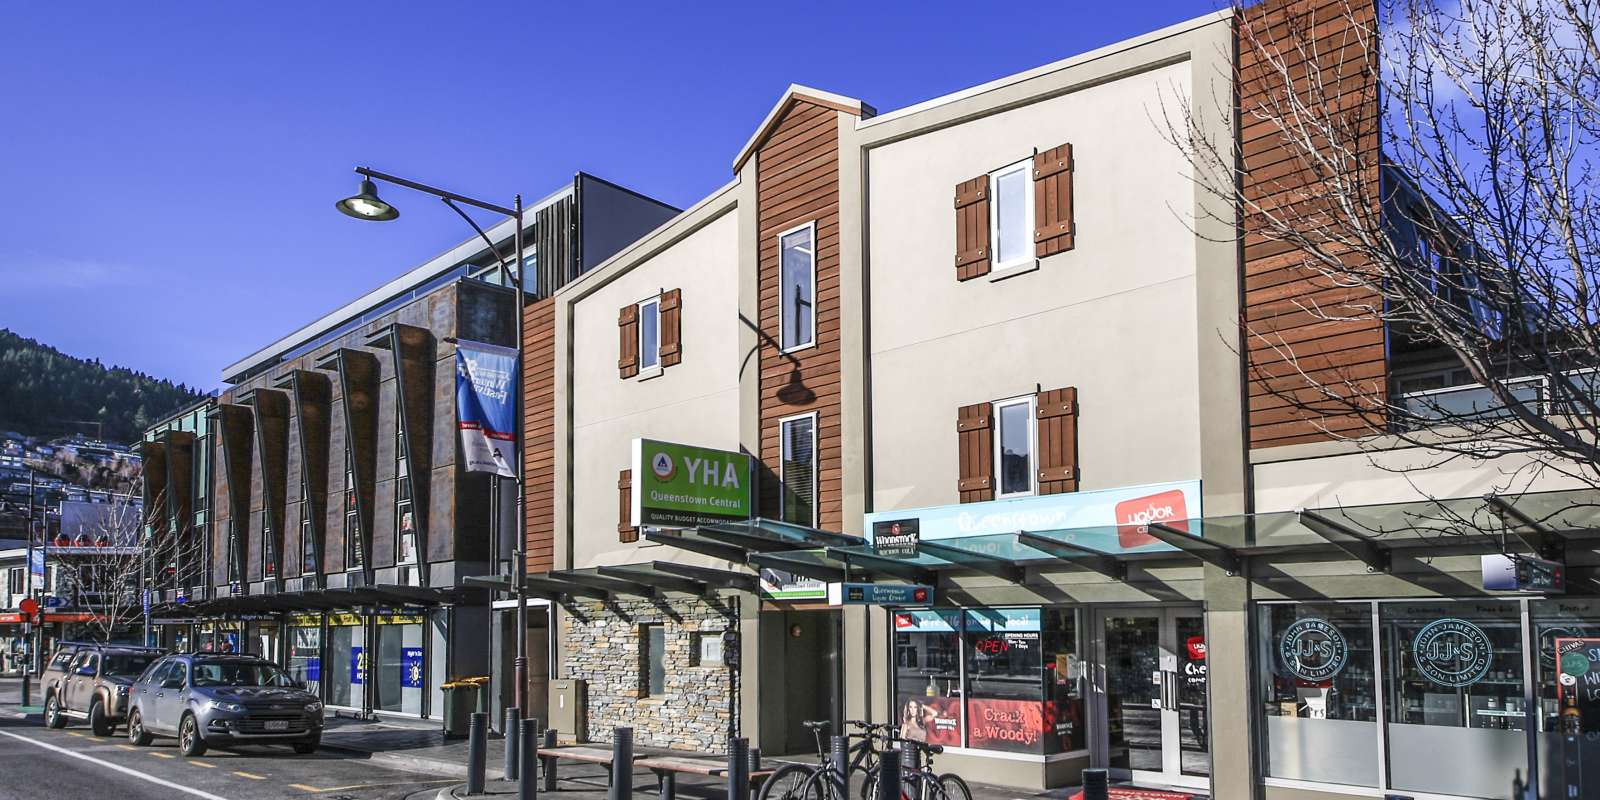 YHA Queenstown Central exterior view from street